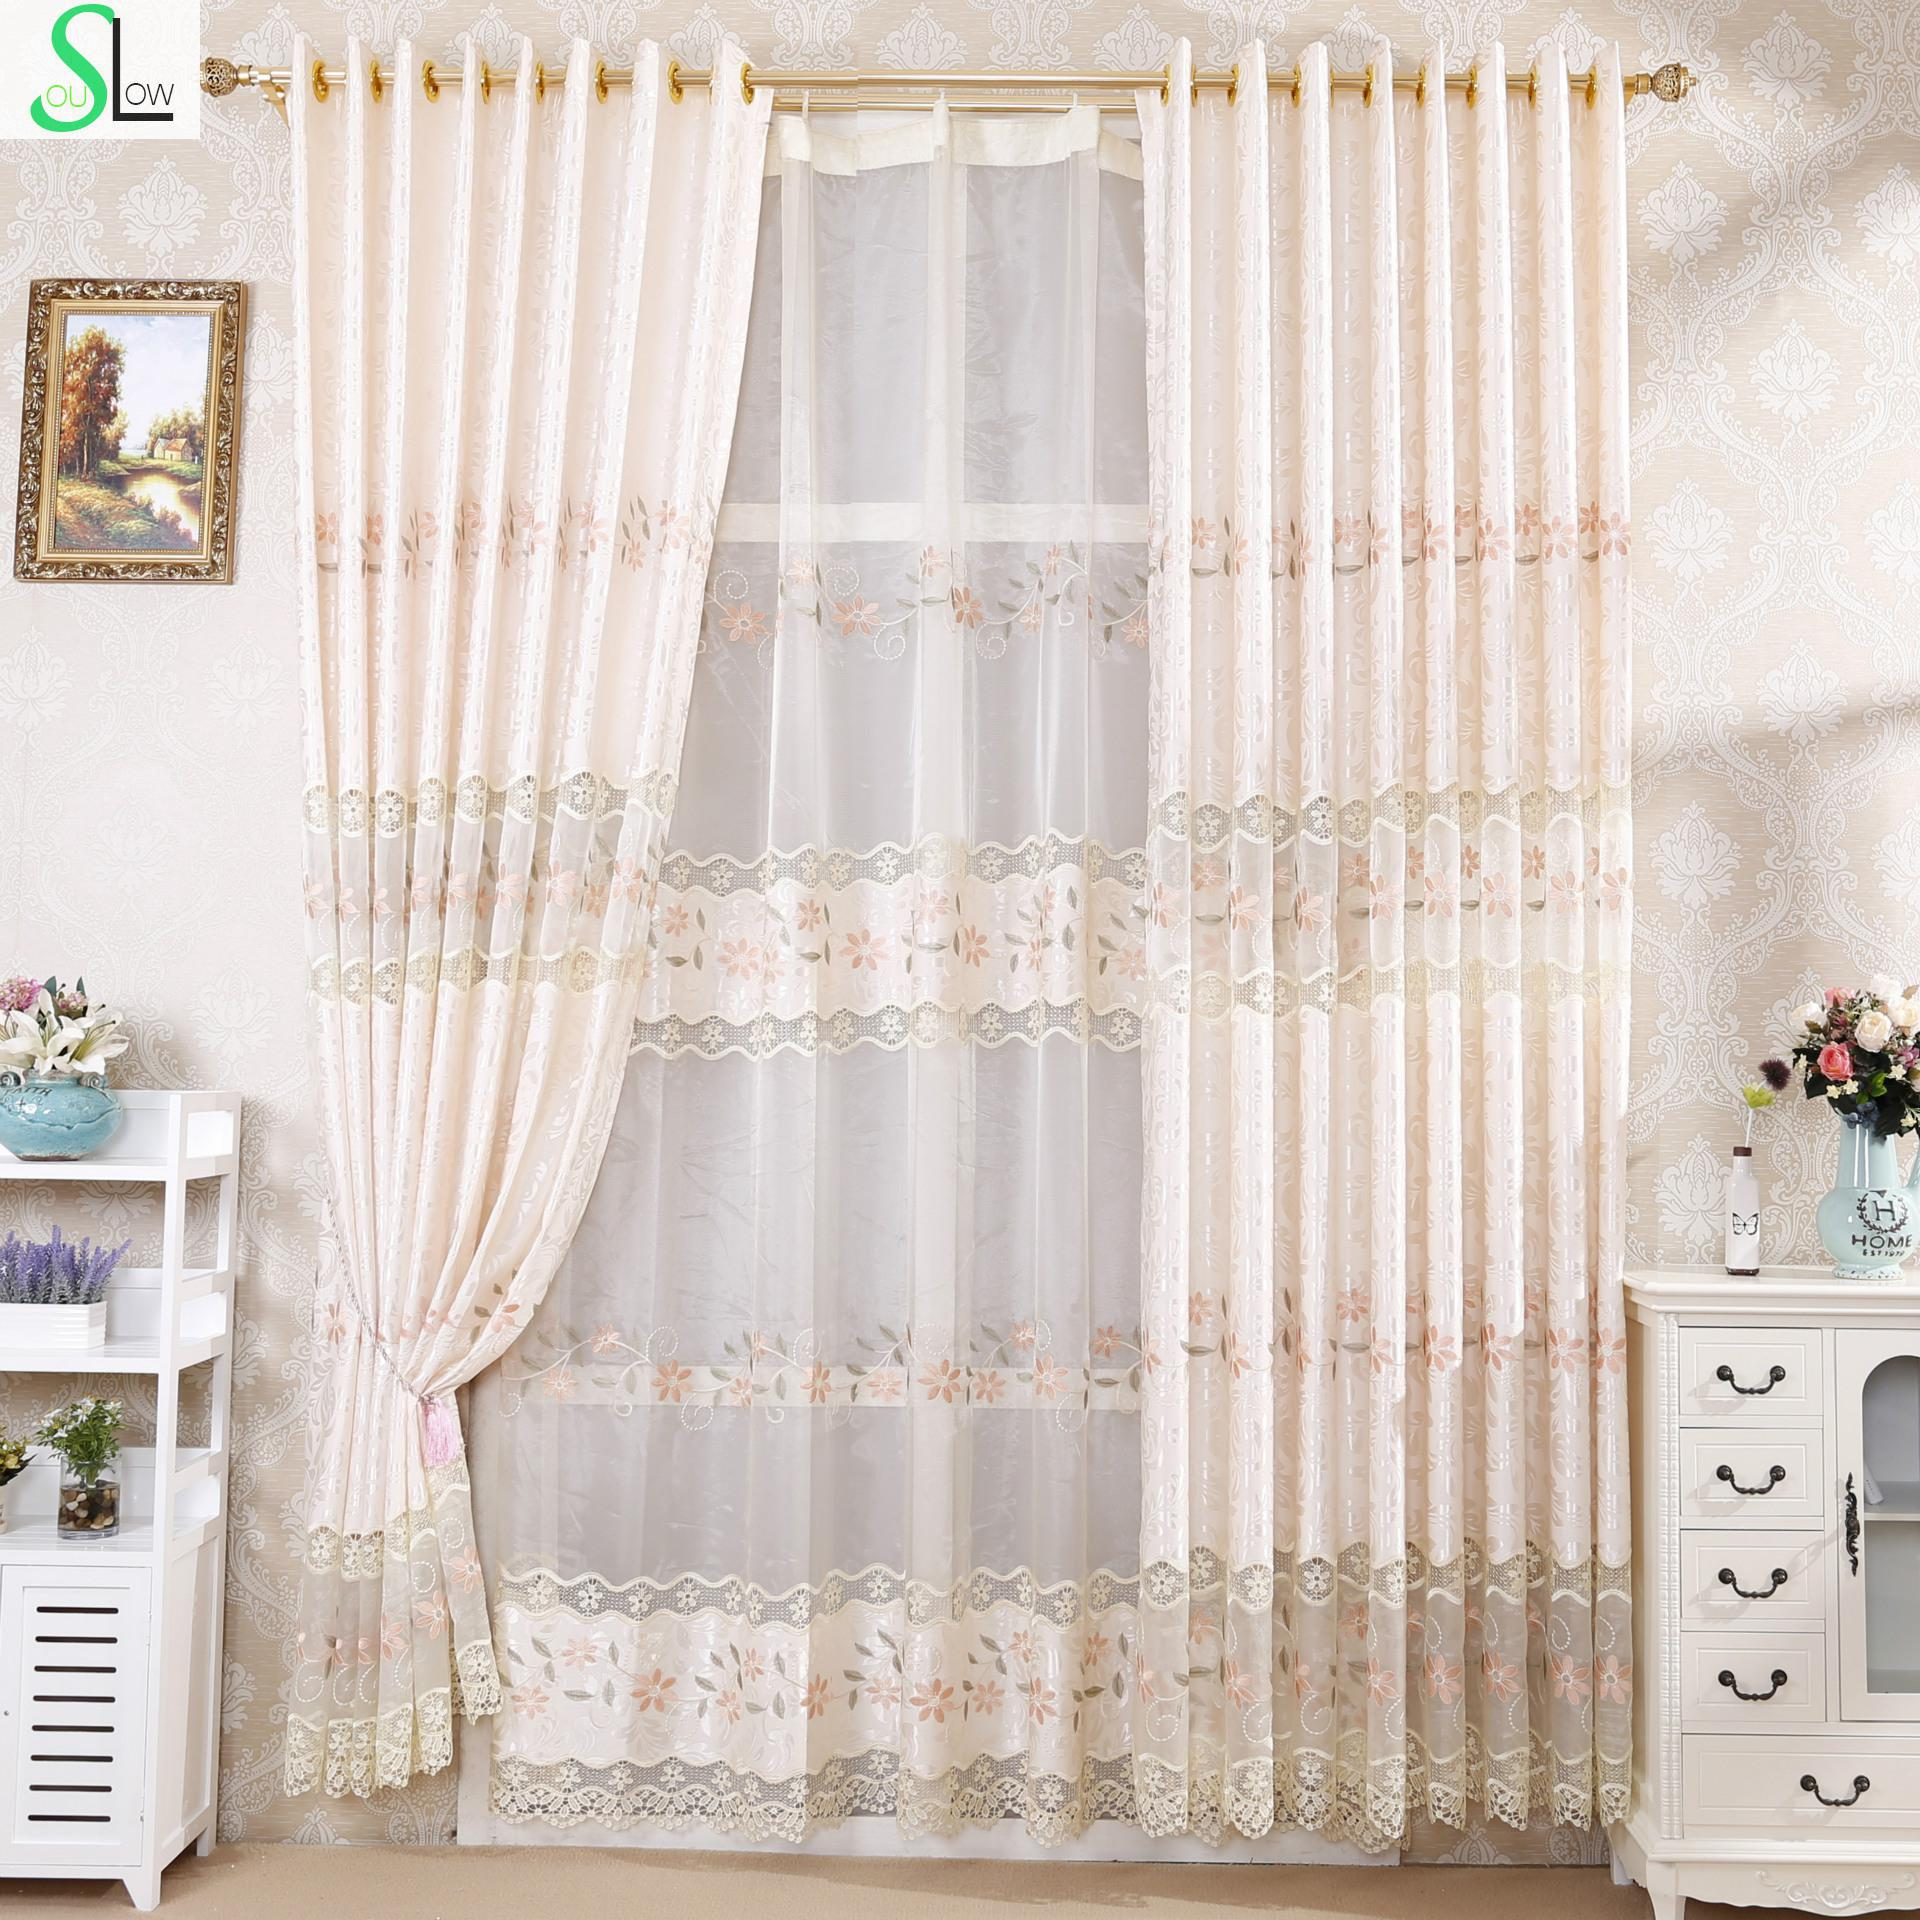 Slow Soul Water Soluble Embroidery European Curtain Fabric French Window Curtains For Living